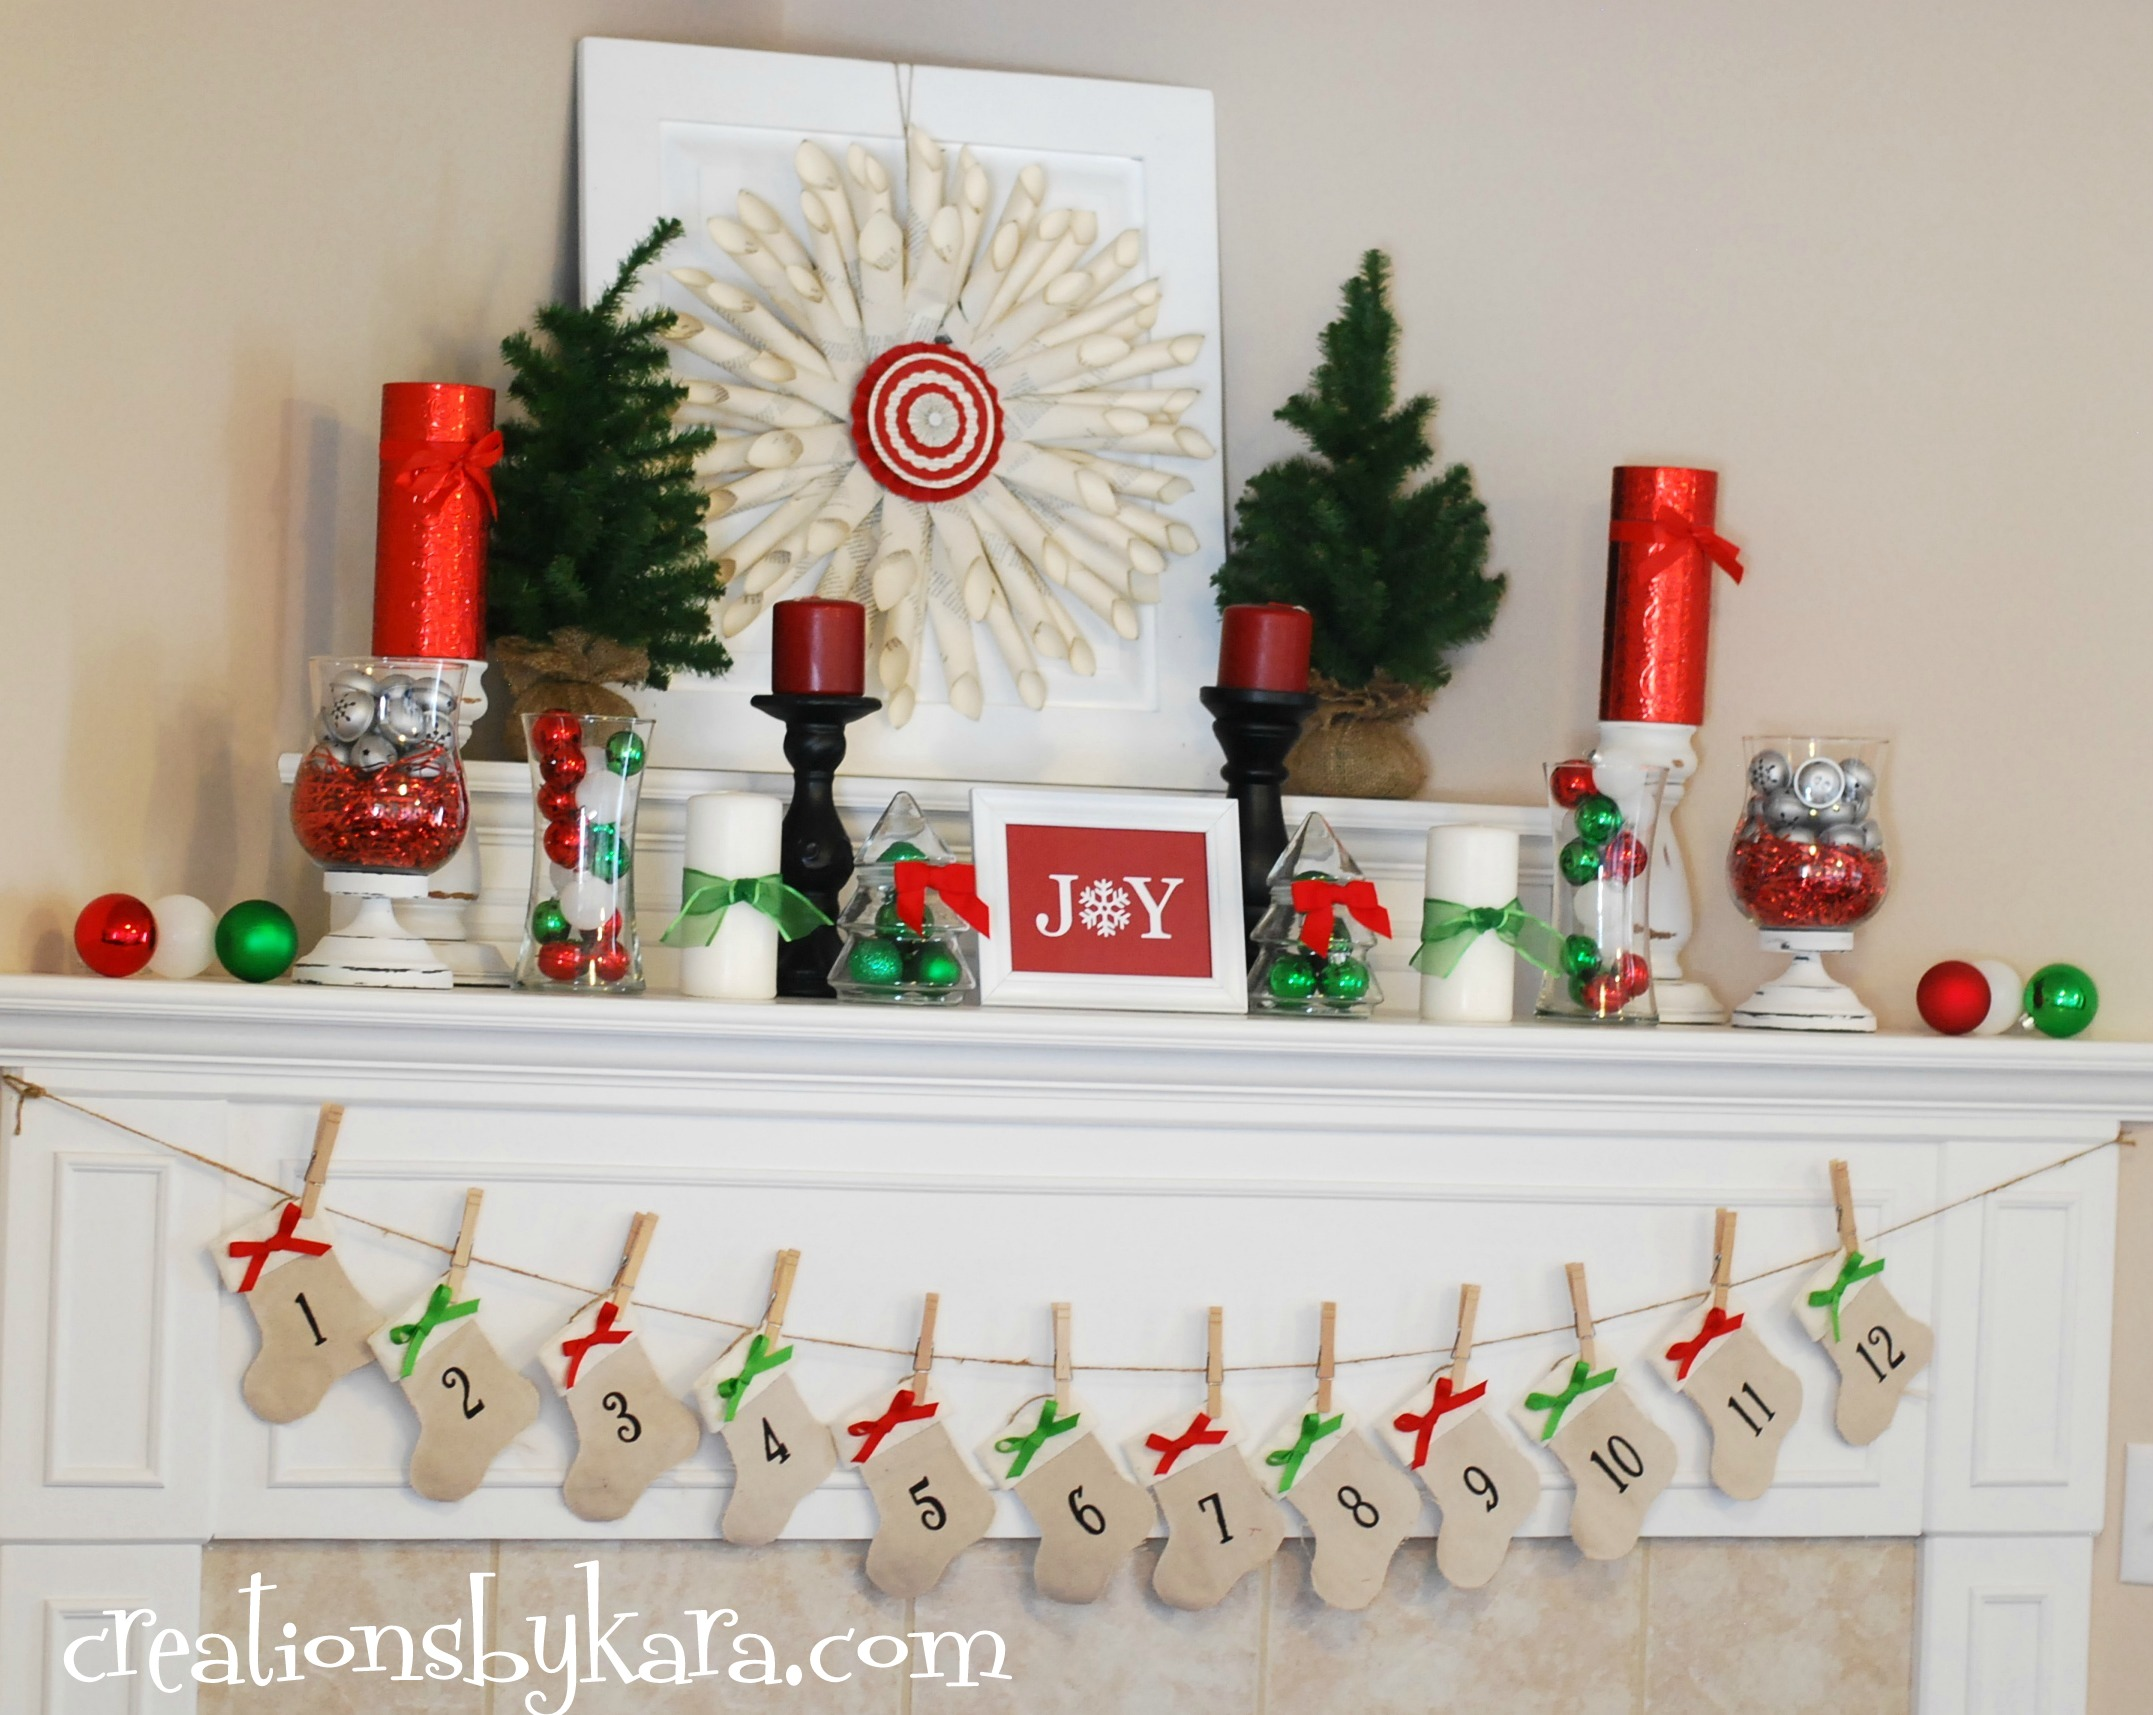 Christmas mantle decor - Top 40 Christmas Mantelpiece Decorations Ideas